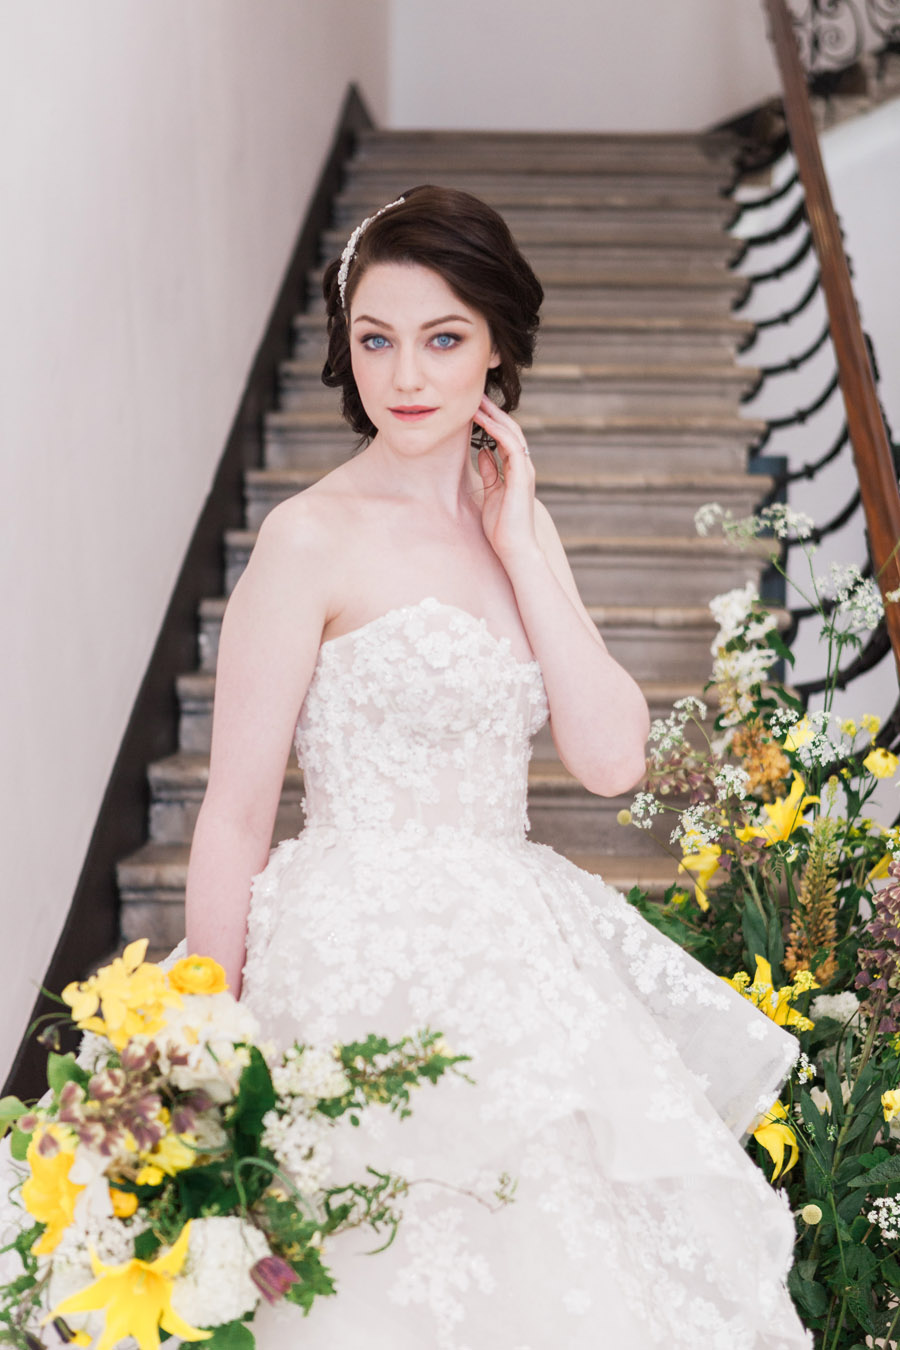 Glorious yellow Bloomologie blooms and styling by Chenai - photo credit Amanda Karen Photography (5)